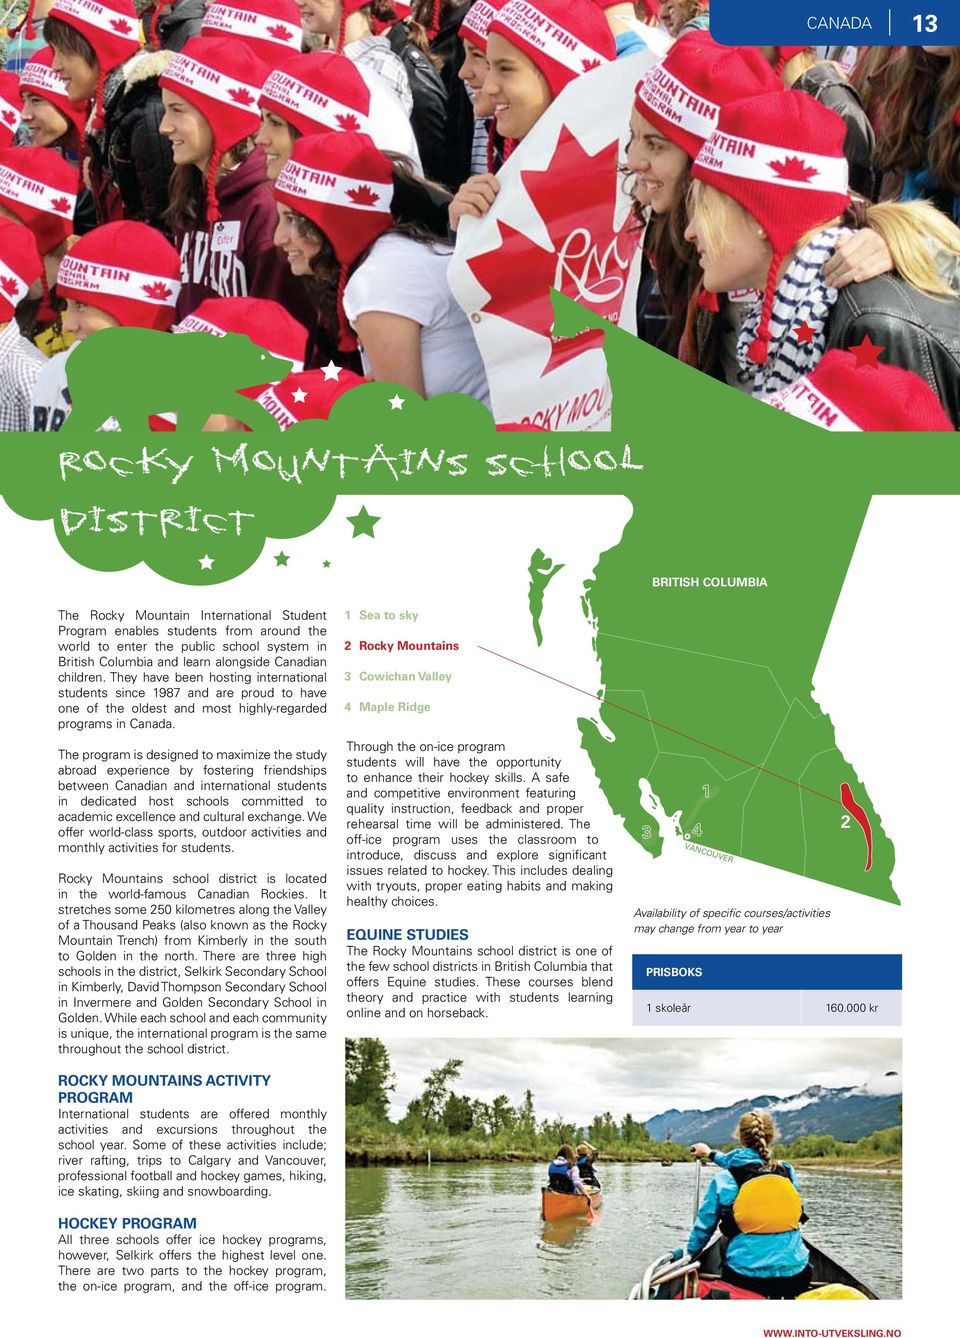 The program is designed to maximize the study abroad experience by fostering friendships between Canadian and international students in dedicated host schools committed to academic excellence and